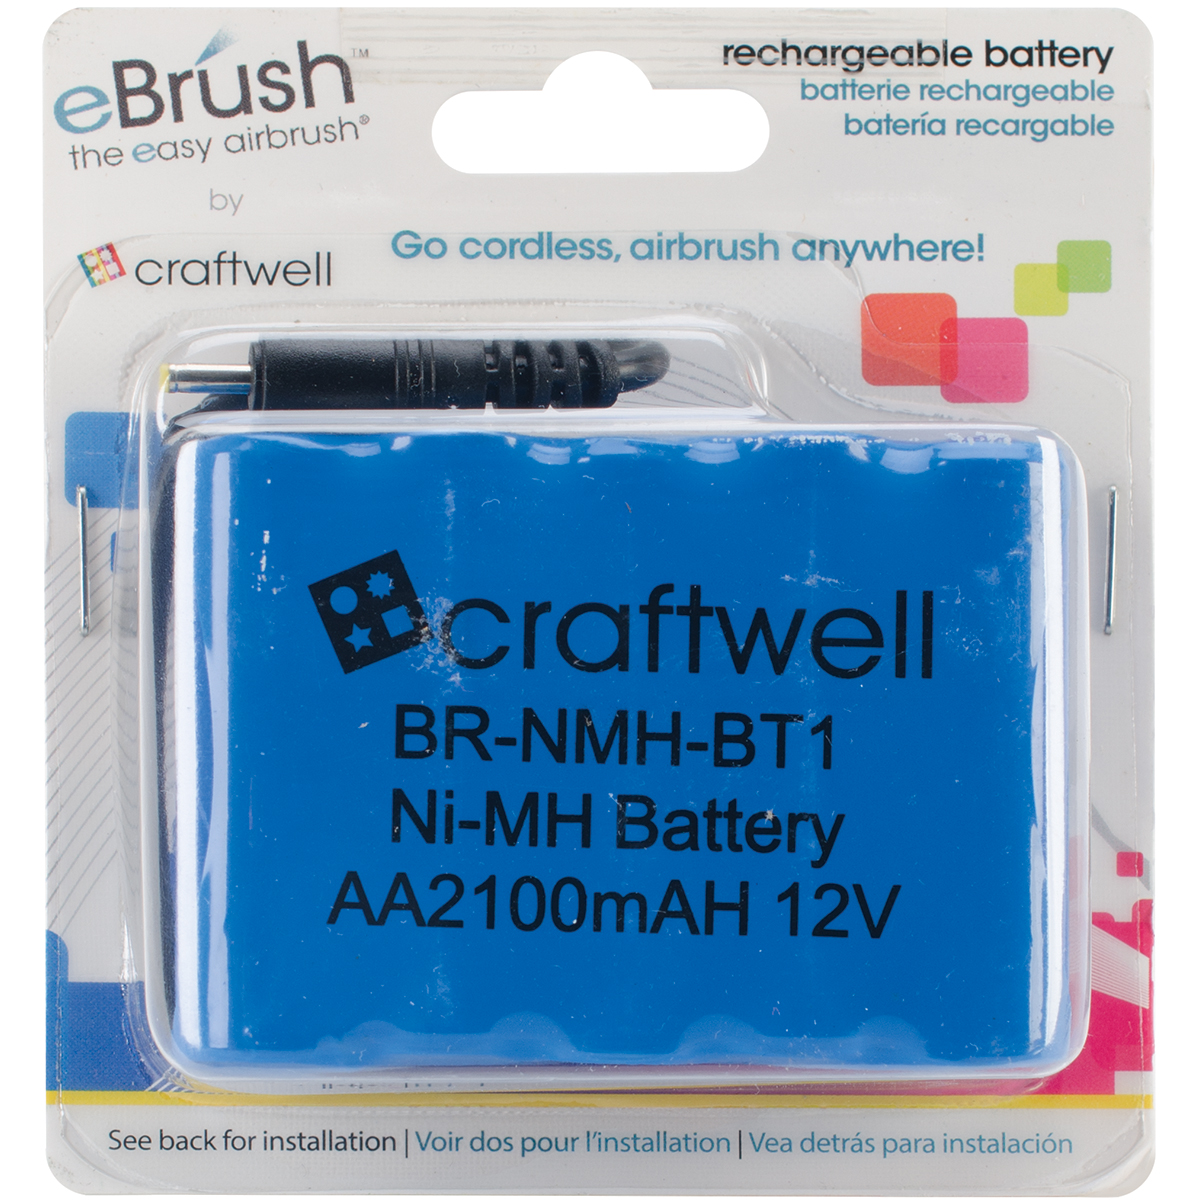 eBrush Rechargeable Battery-